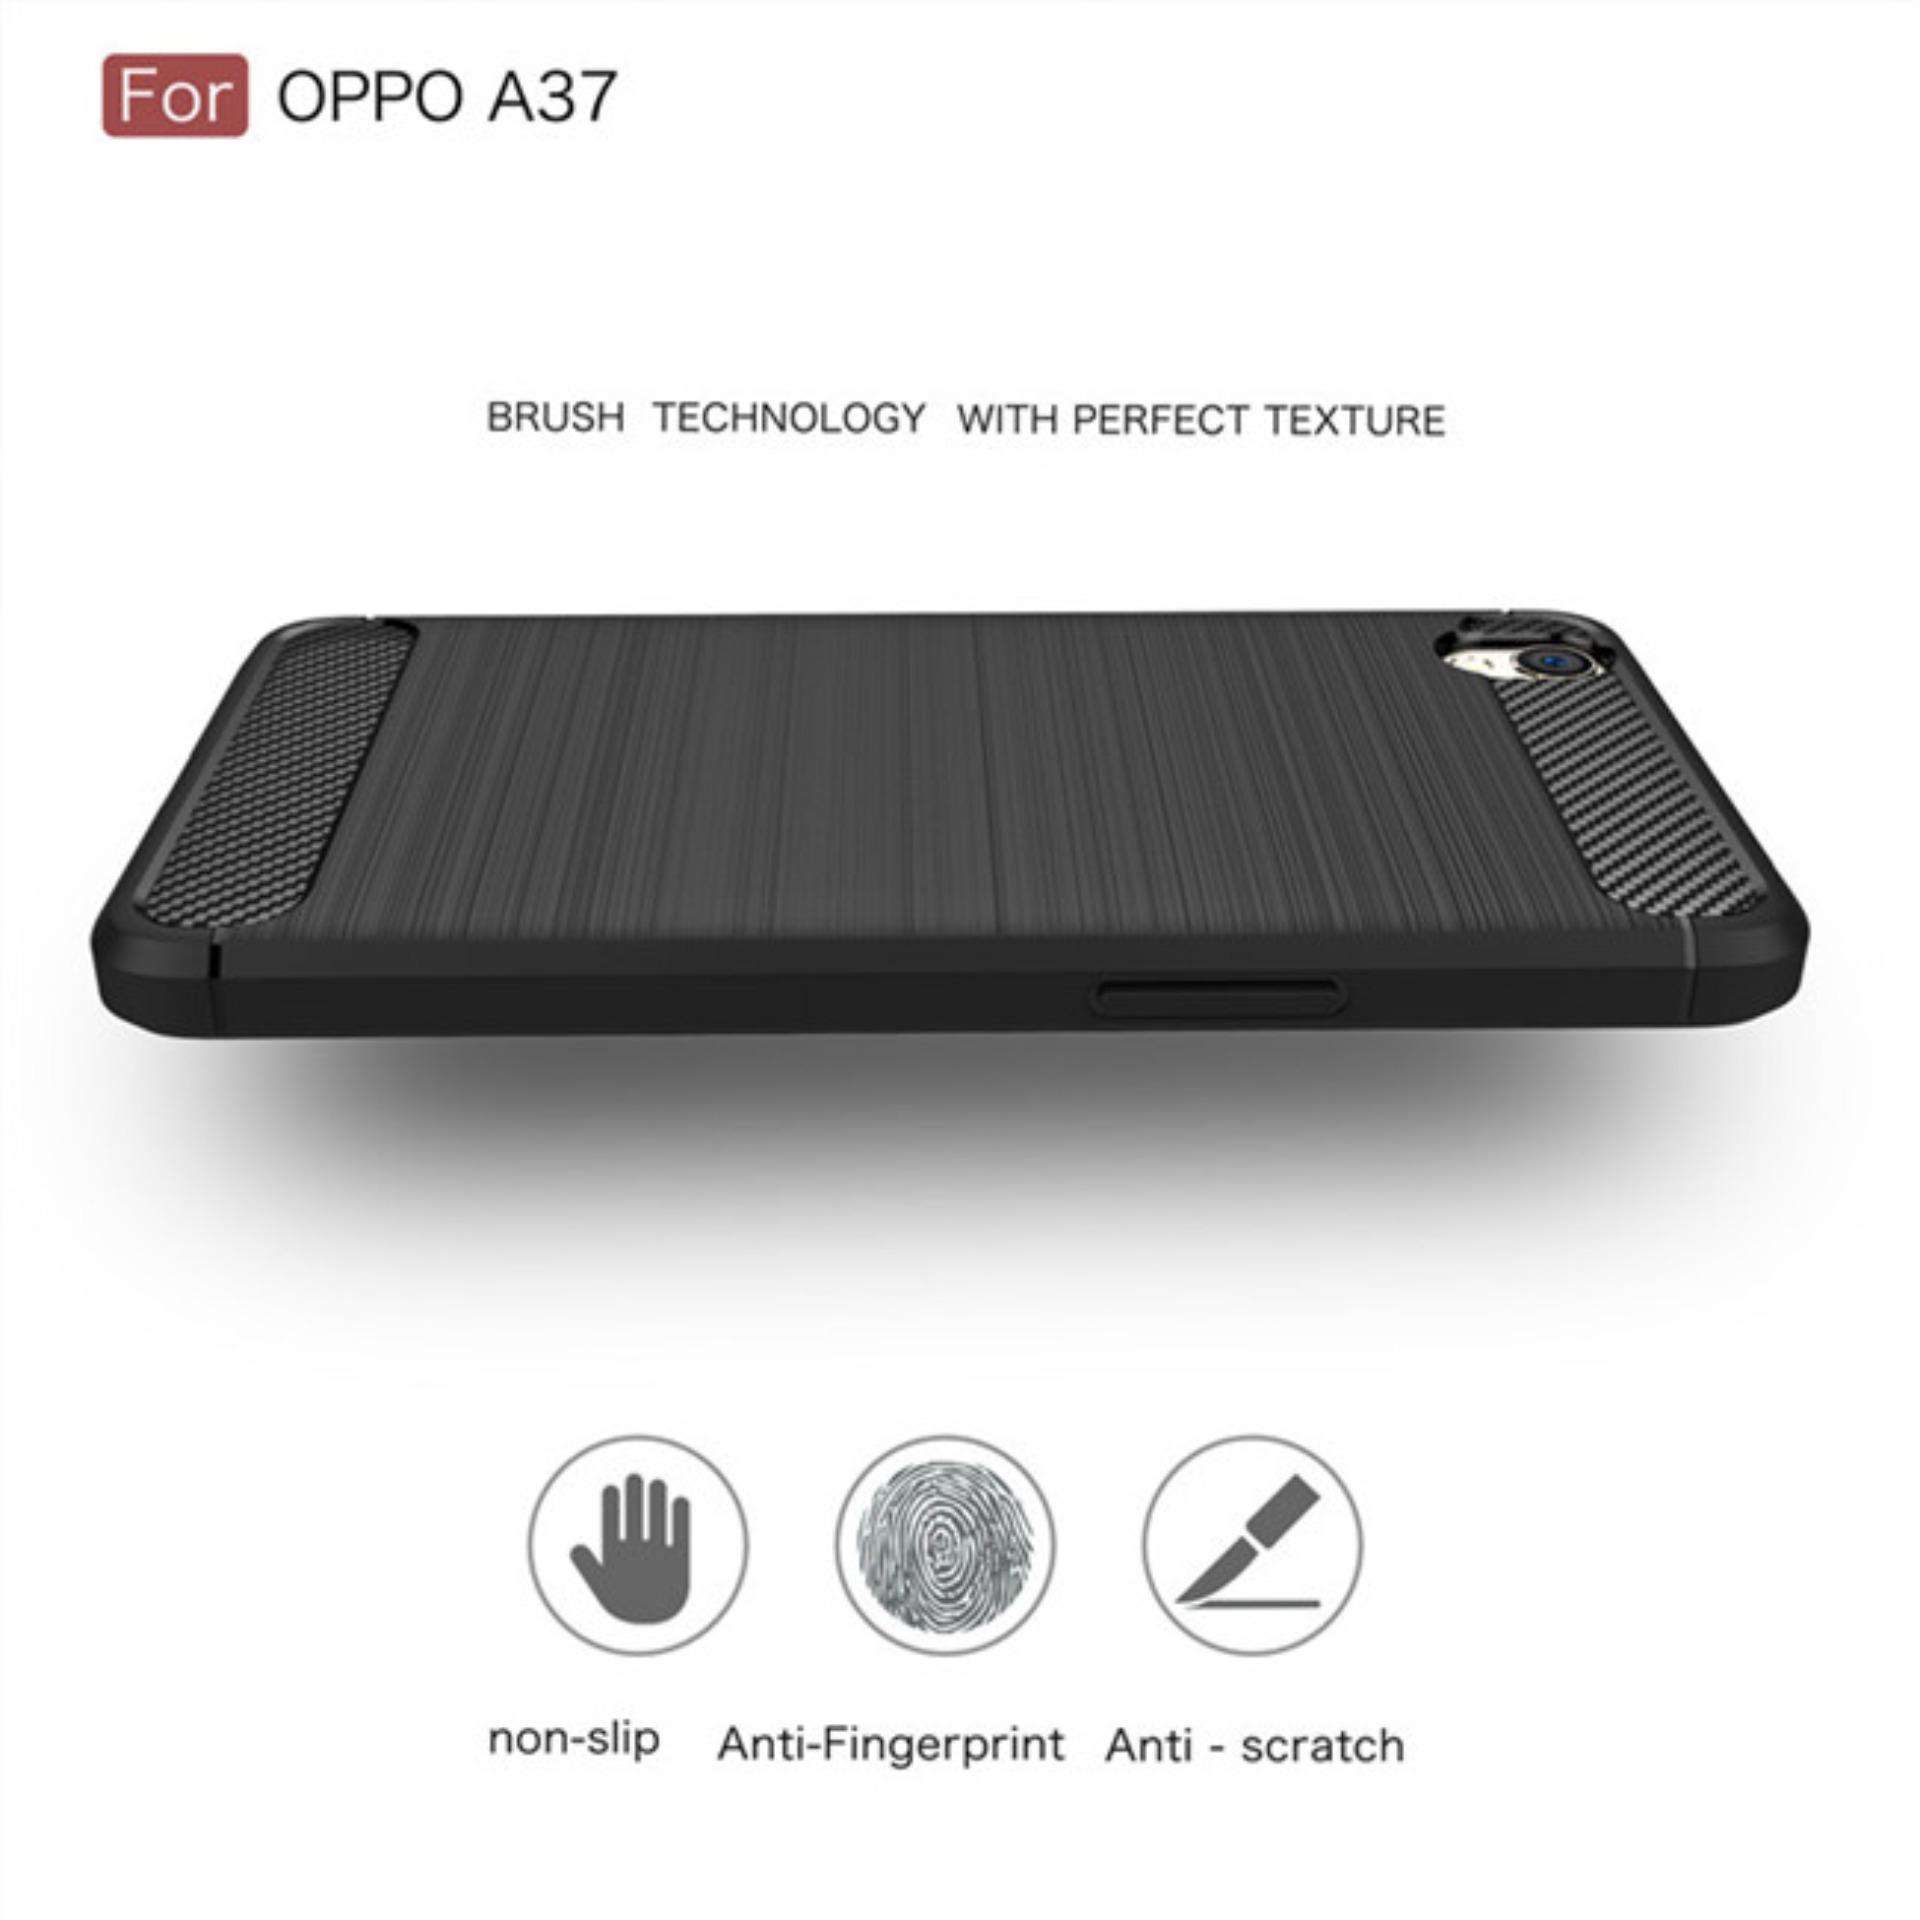 ... Poluca Luxury Case For Oppo A37 / Neo 9 Carbon Brushed TPU Shoockproof - Black ...